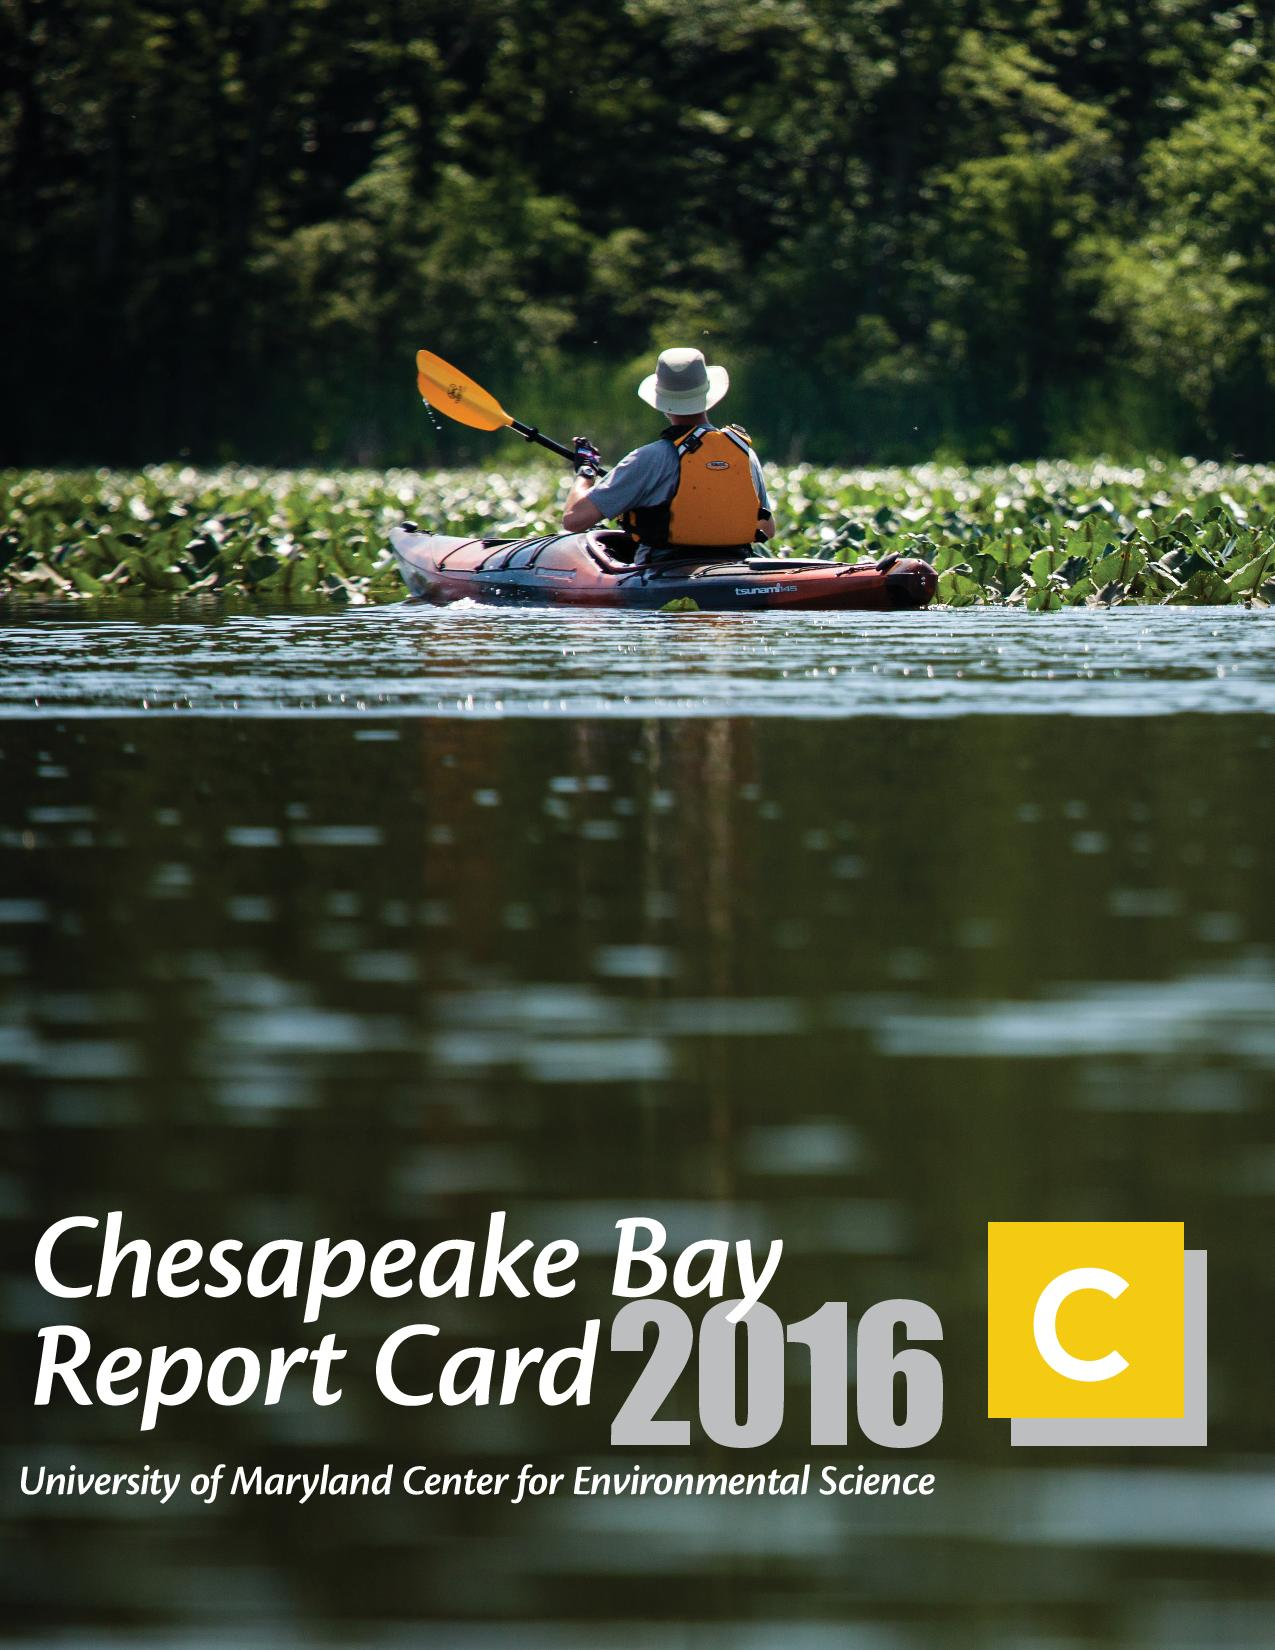 Cover of the Chesapeake Bay report card for 2016, featuring a kayaker